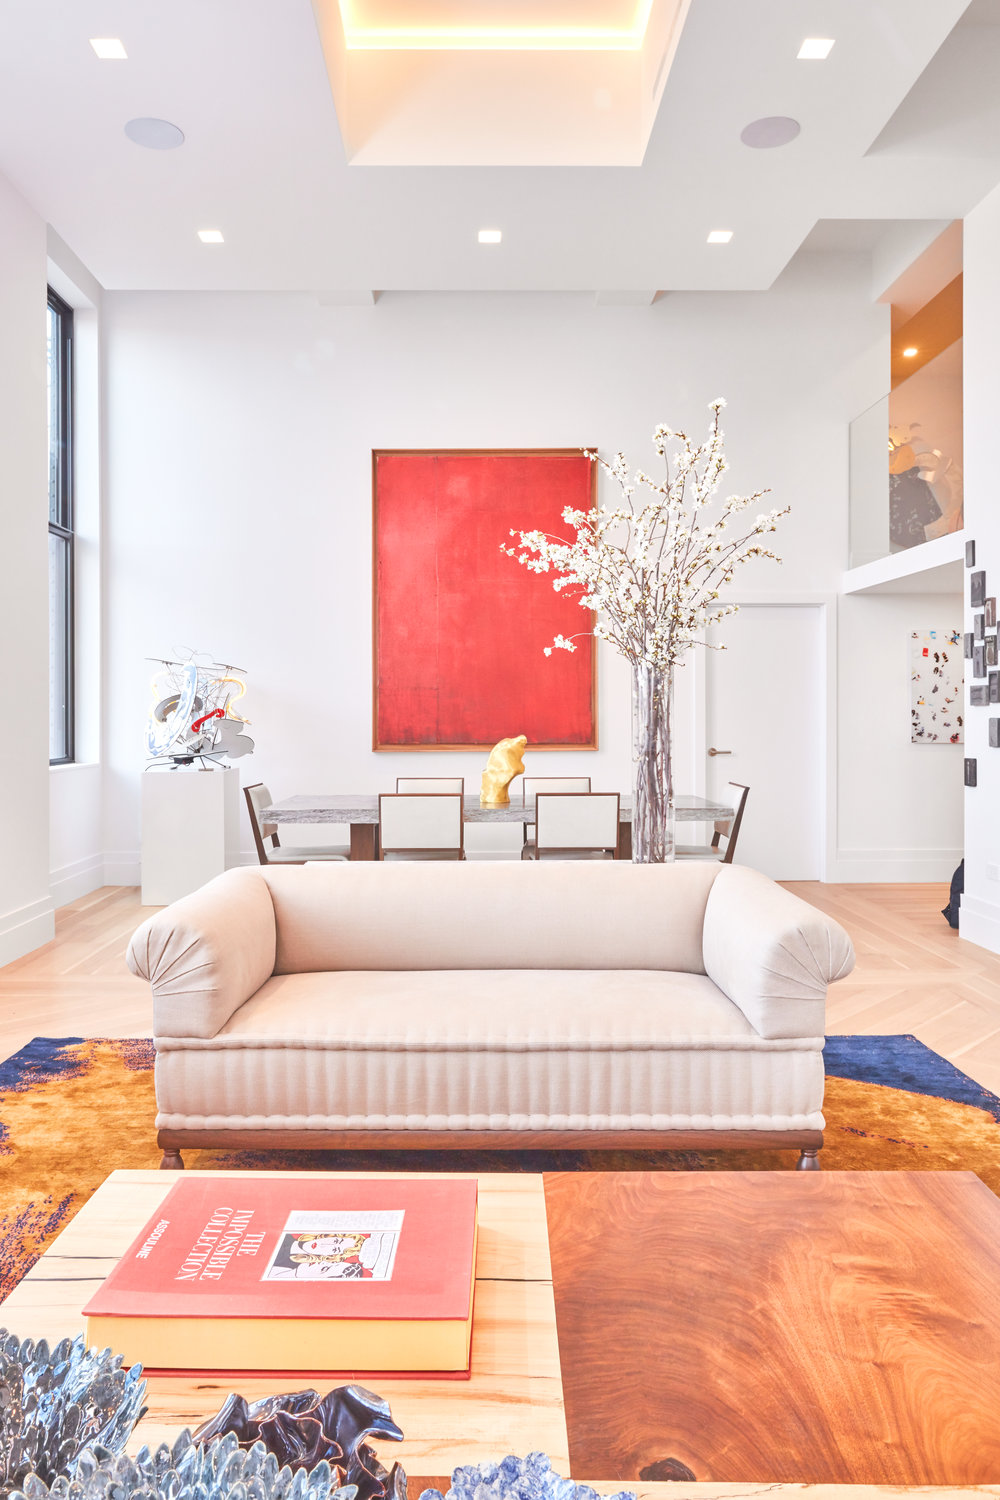 ArtfulLiving_WestVillage_14.jpg